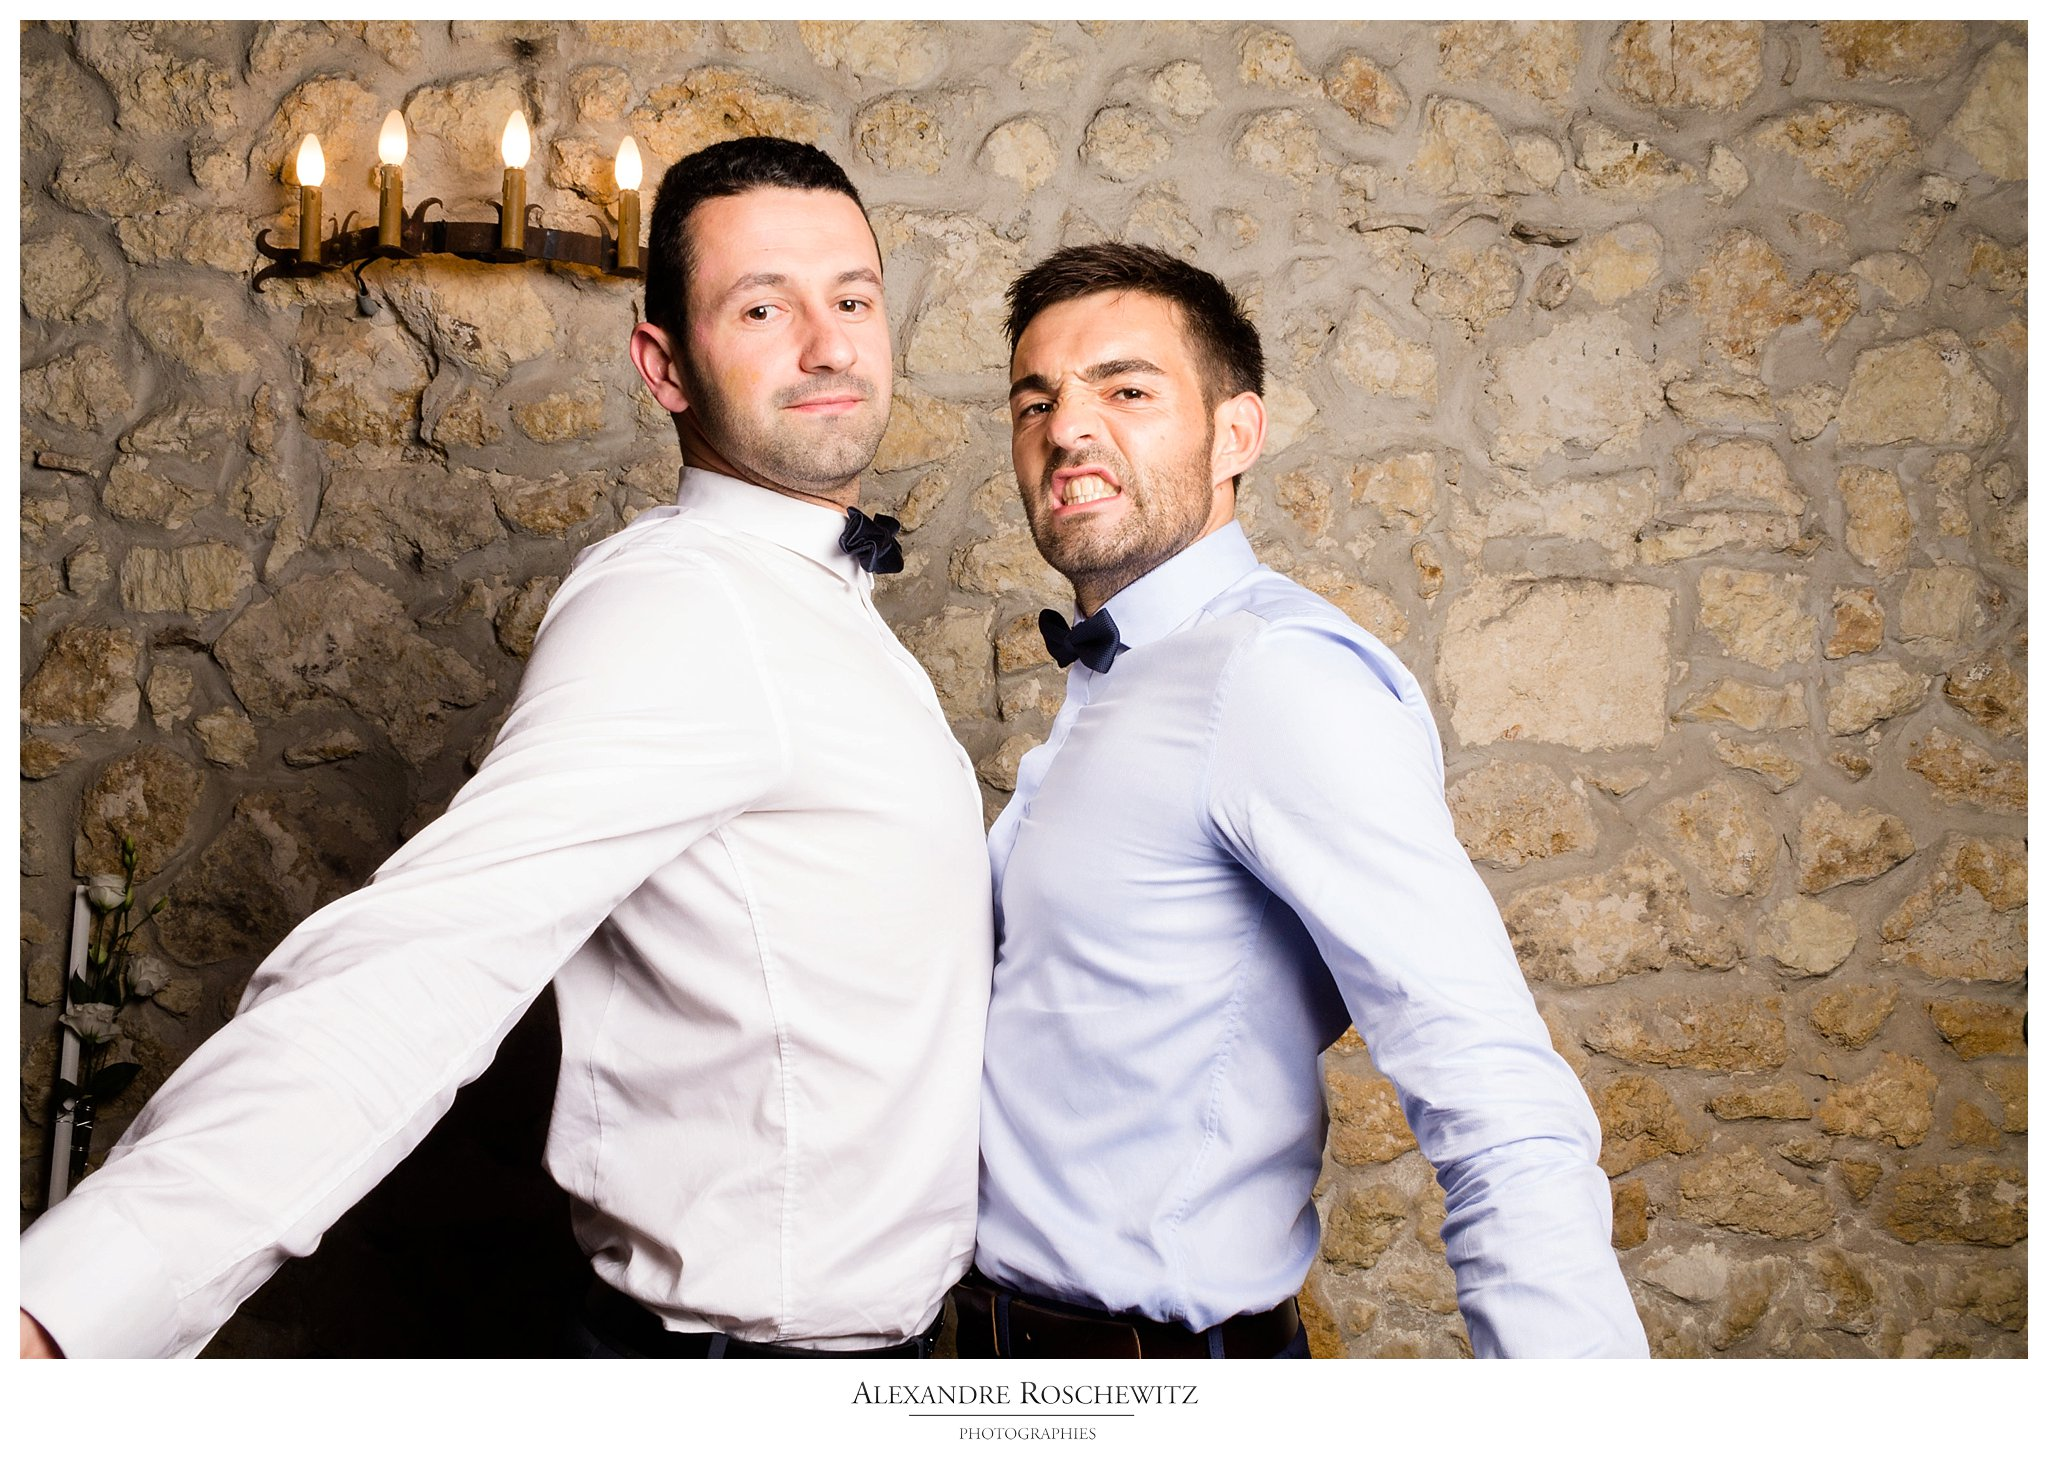 photobooth-mariage-merignac-gironde-maud-anthony-chateau-cujac-alexandre-roschewitz-photographies_1482_2048px